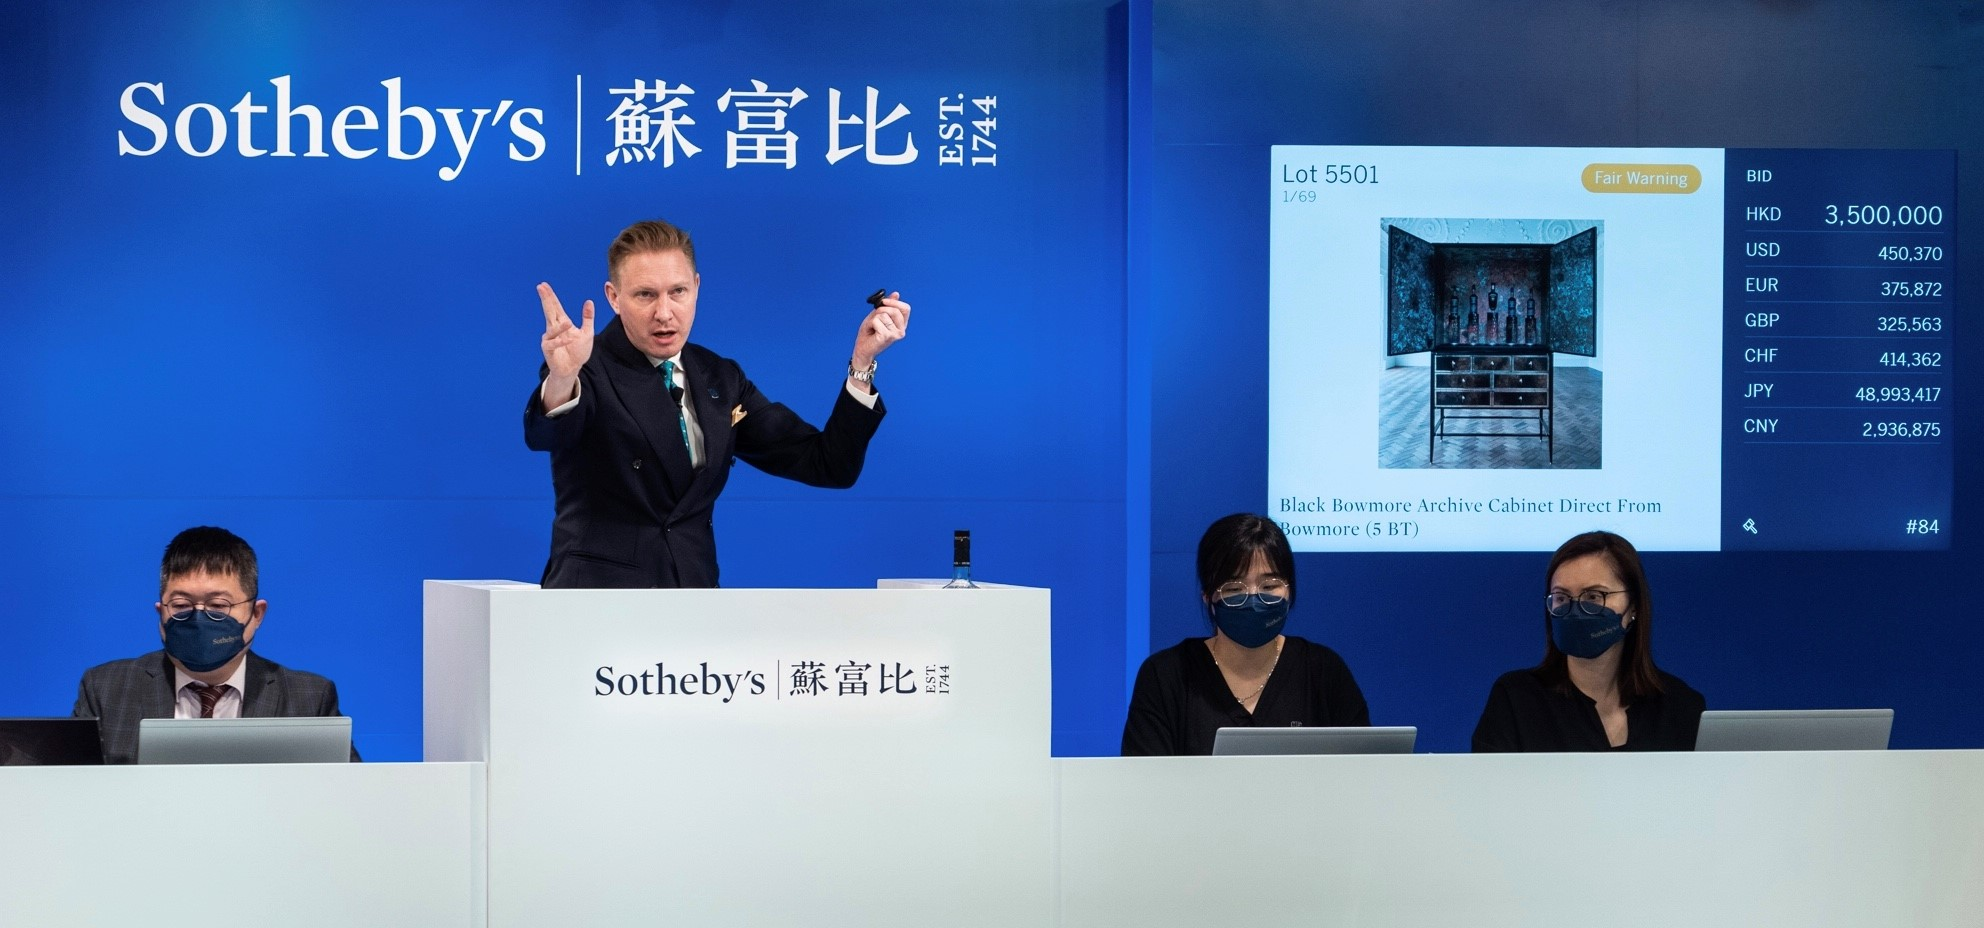 Sotheby's spring sale in Hong Kong ends very high